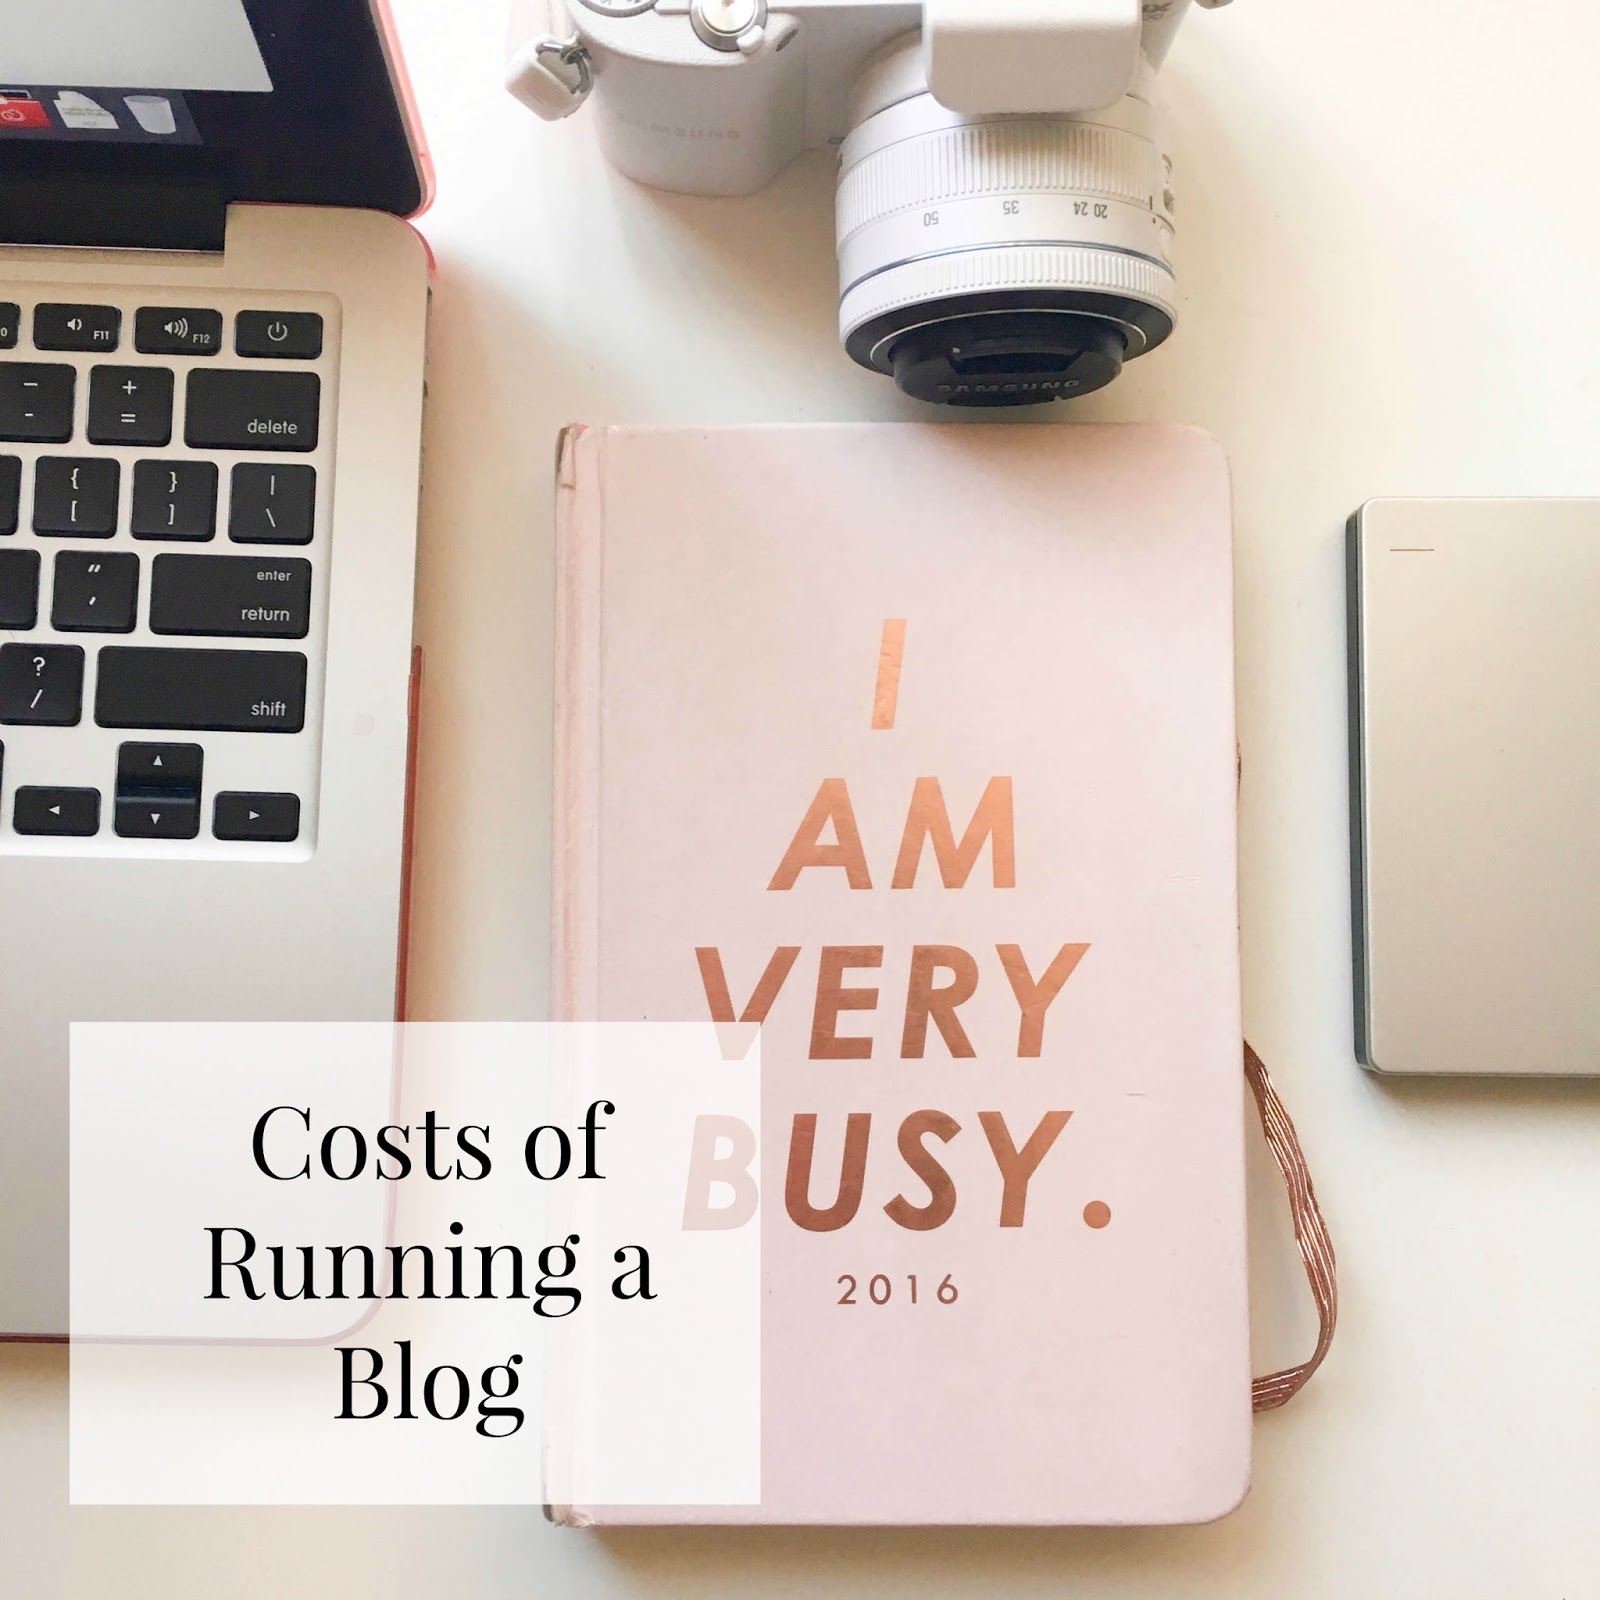 Costs of Running a Blog